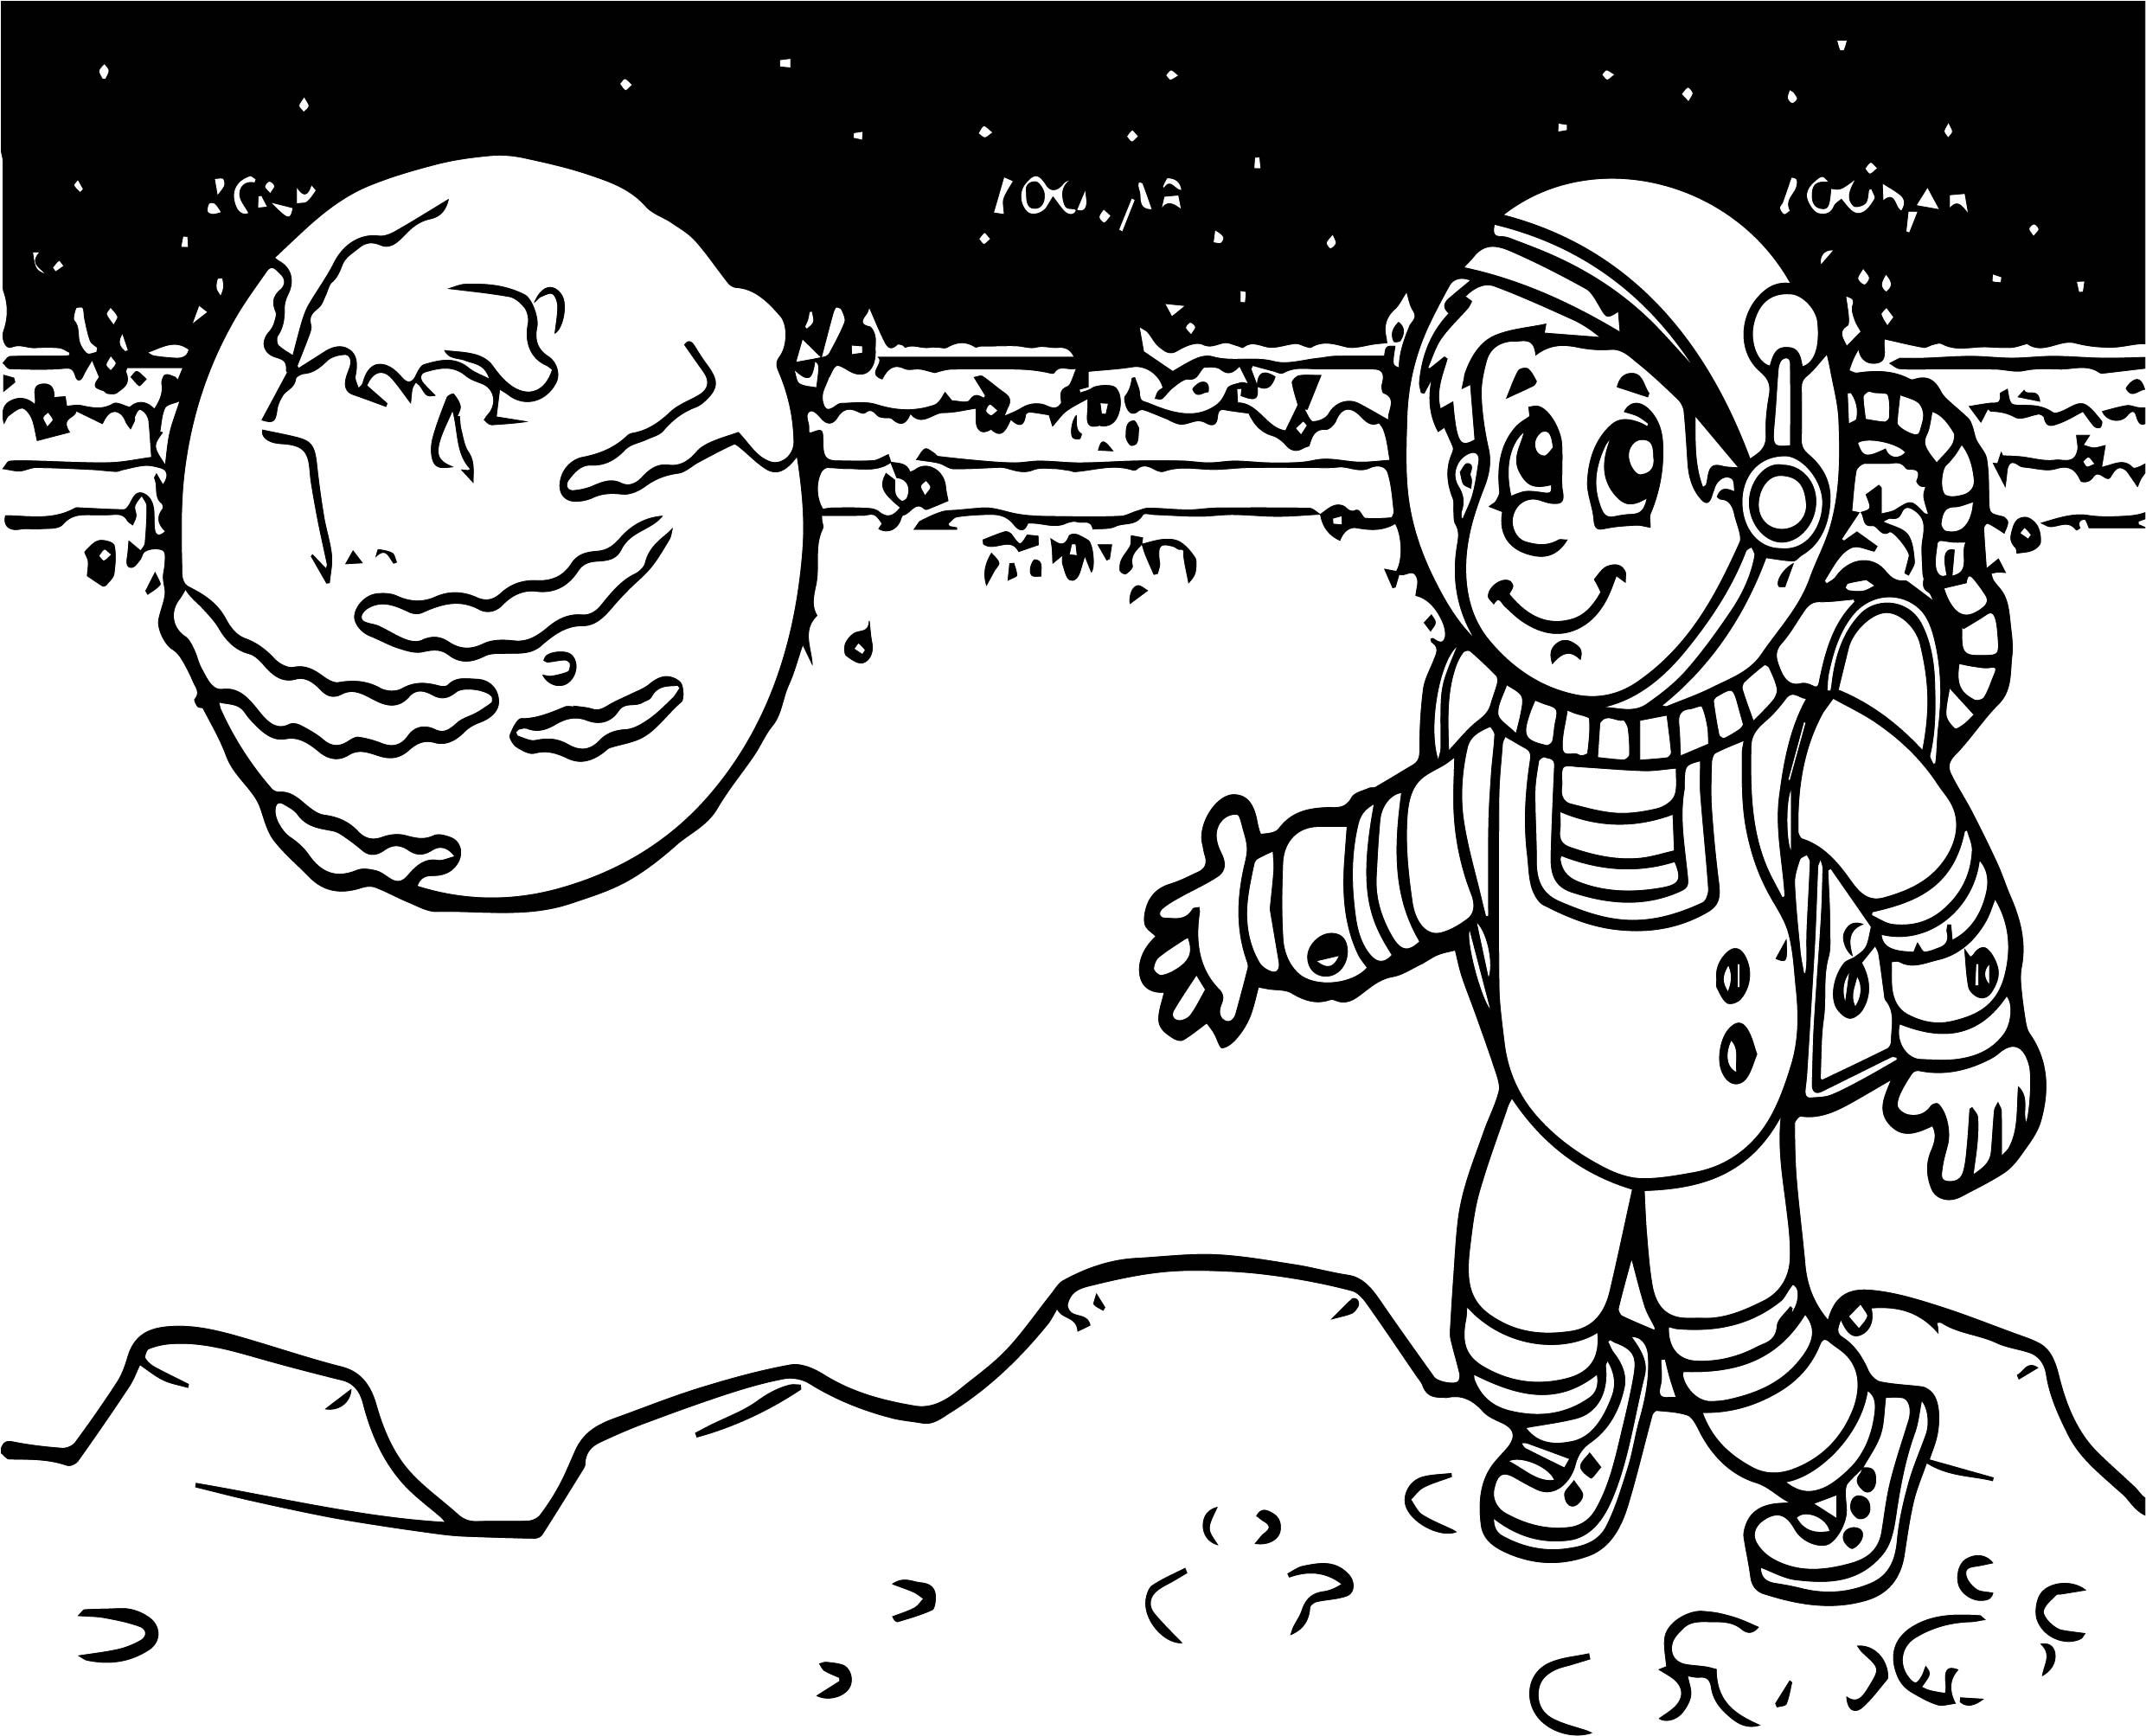 Rainbow Magic Coloring Pages - Coloring Home |Moon Mermaid Coloring Pages